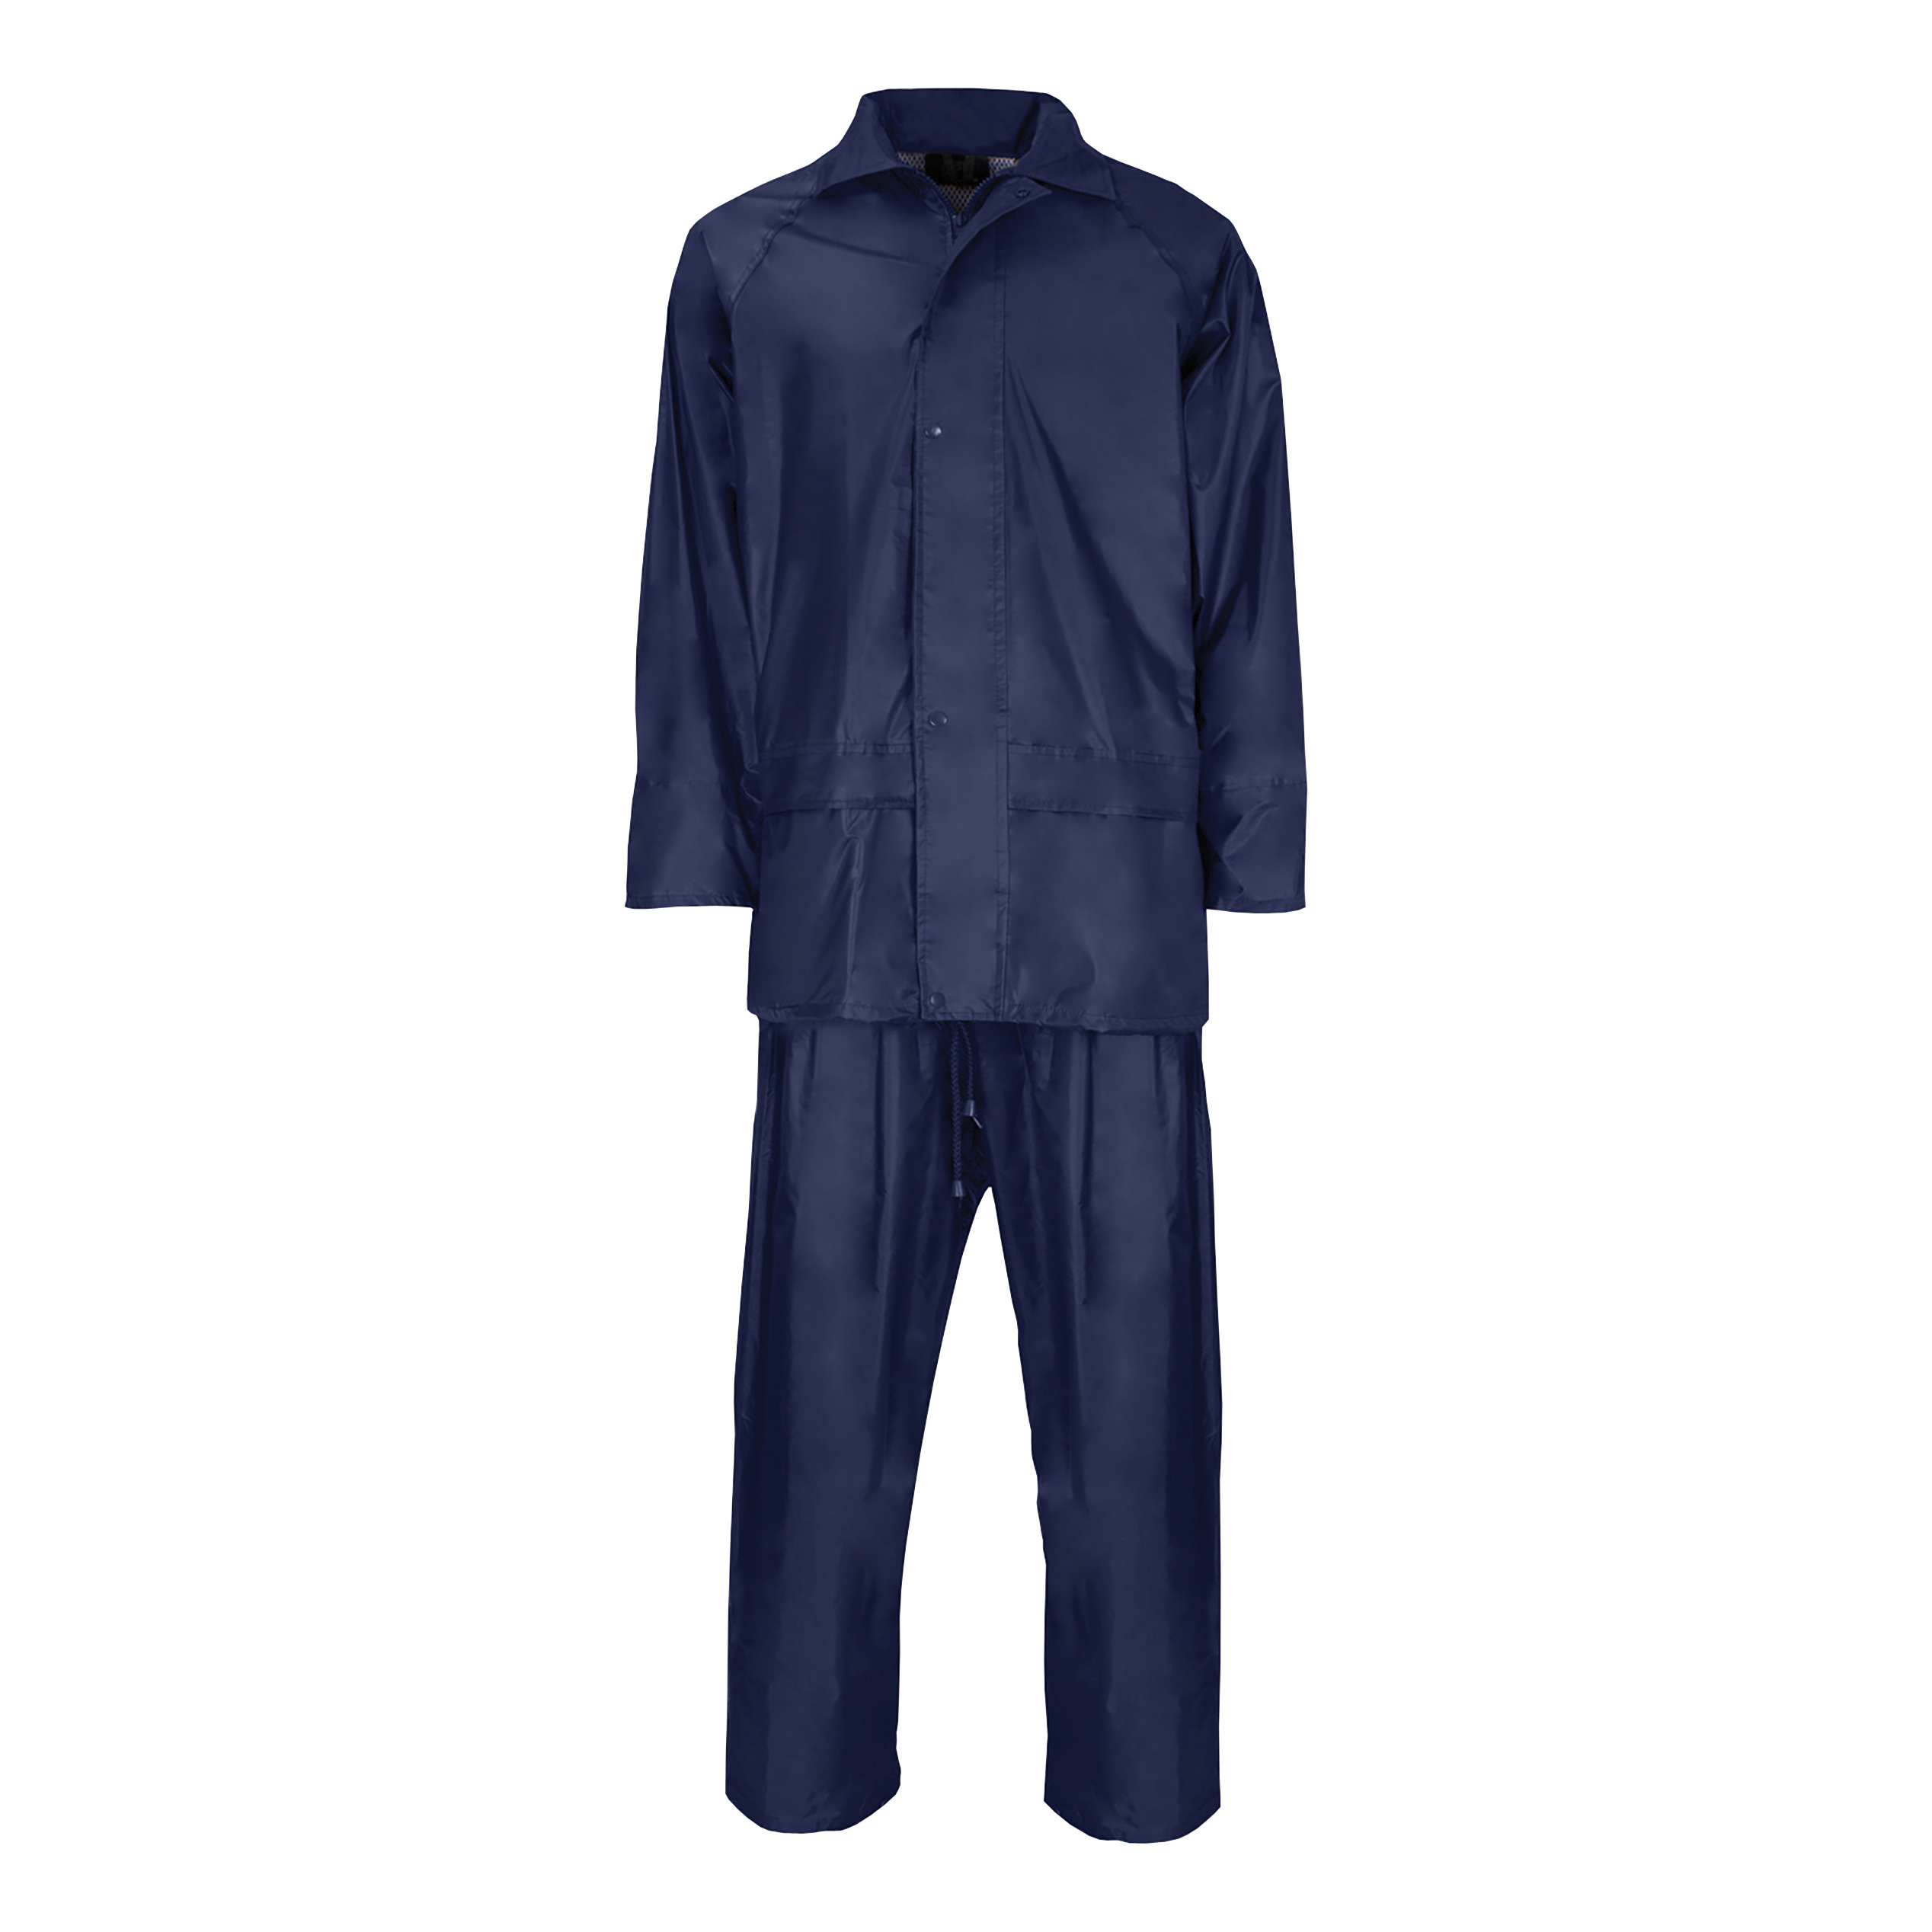 Rainsuit Poly/PVC with Elasticated Waisted Trousers XL Navy Approx 3 Day Leadtime